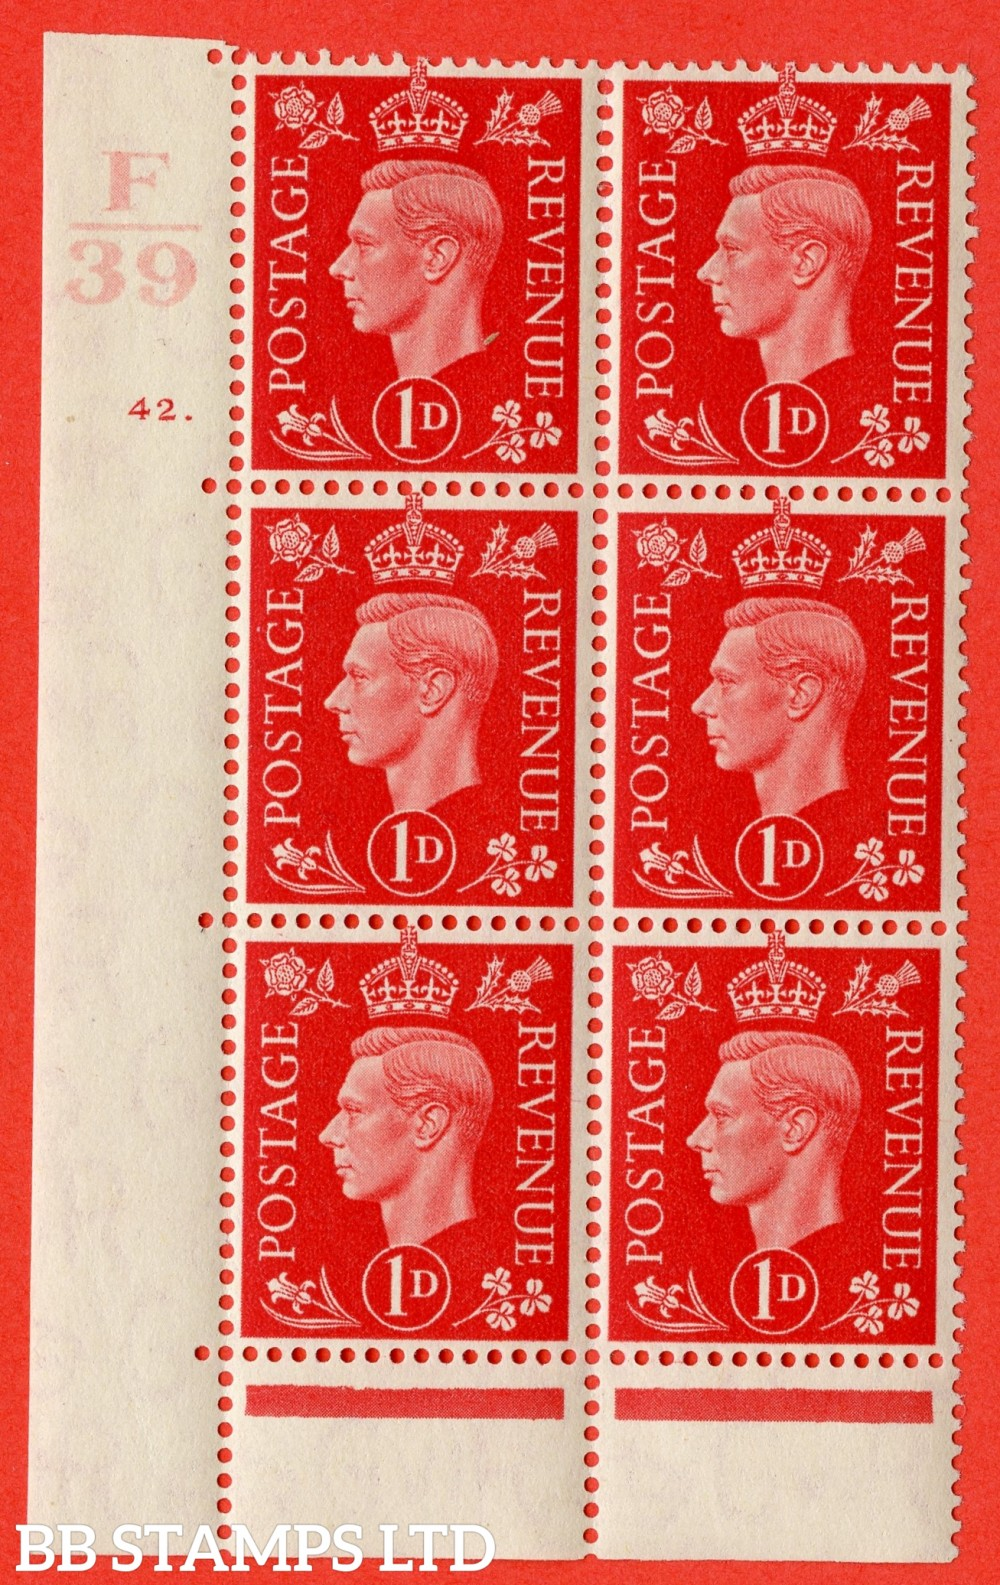 "SG. 463. Q4. 1d Scarlet. A very fine lightly mounted mint "" Control F39 cylinder 42 dot "" block of 6 with perf type 6B E/P with marginal rule. Perf separation at top."